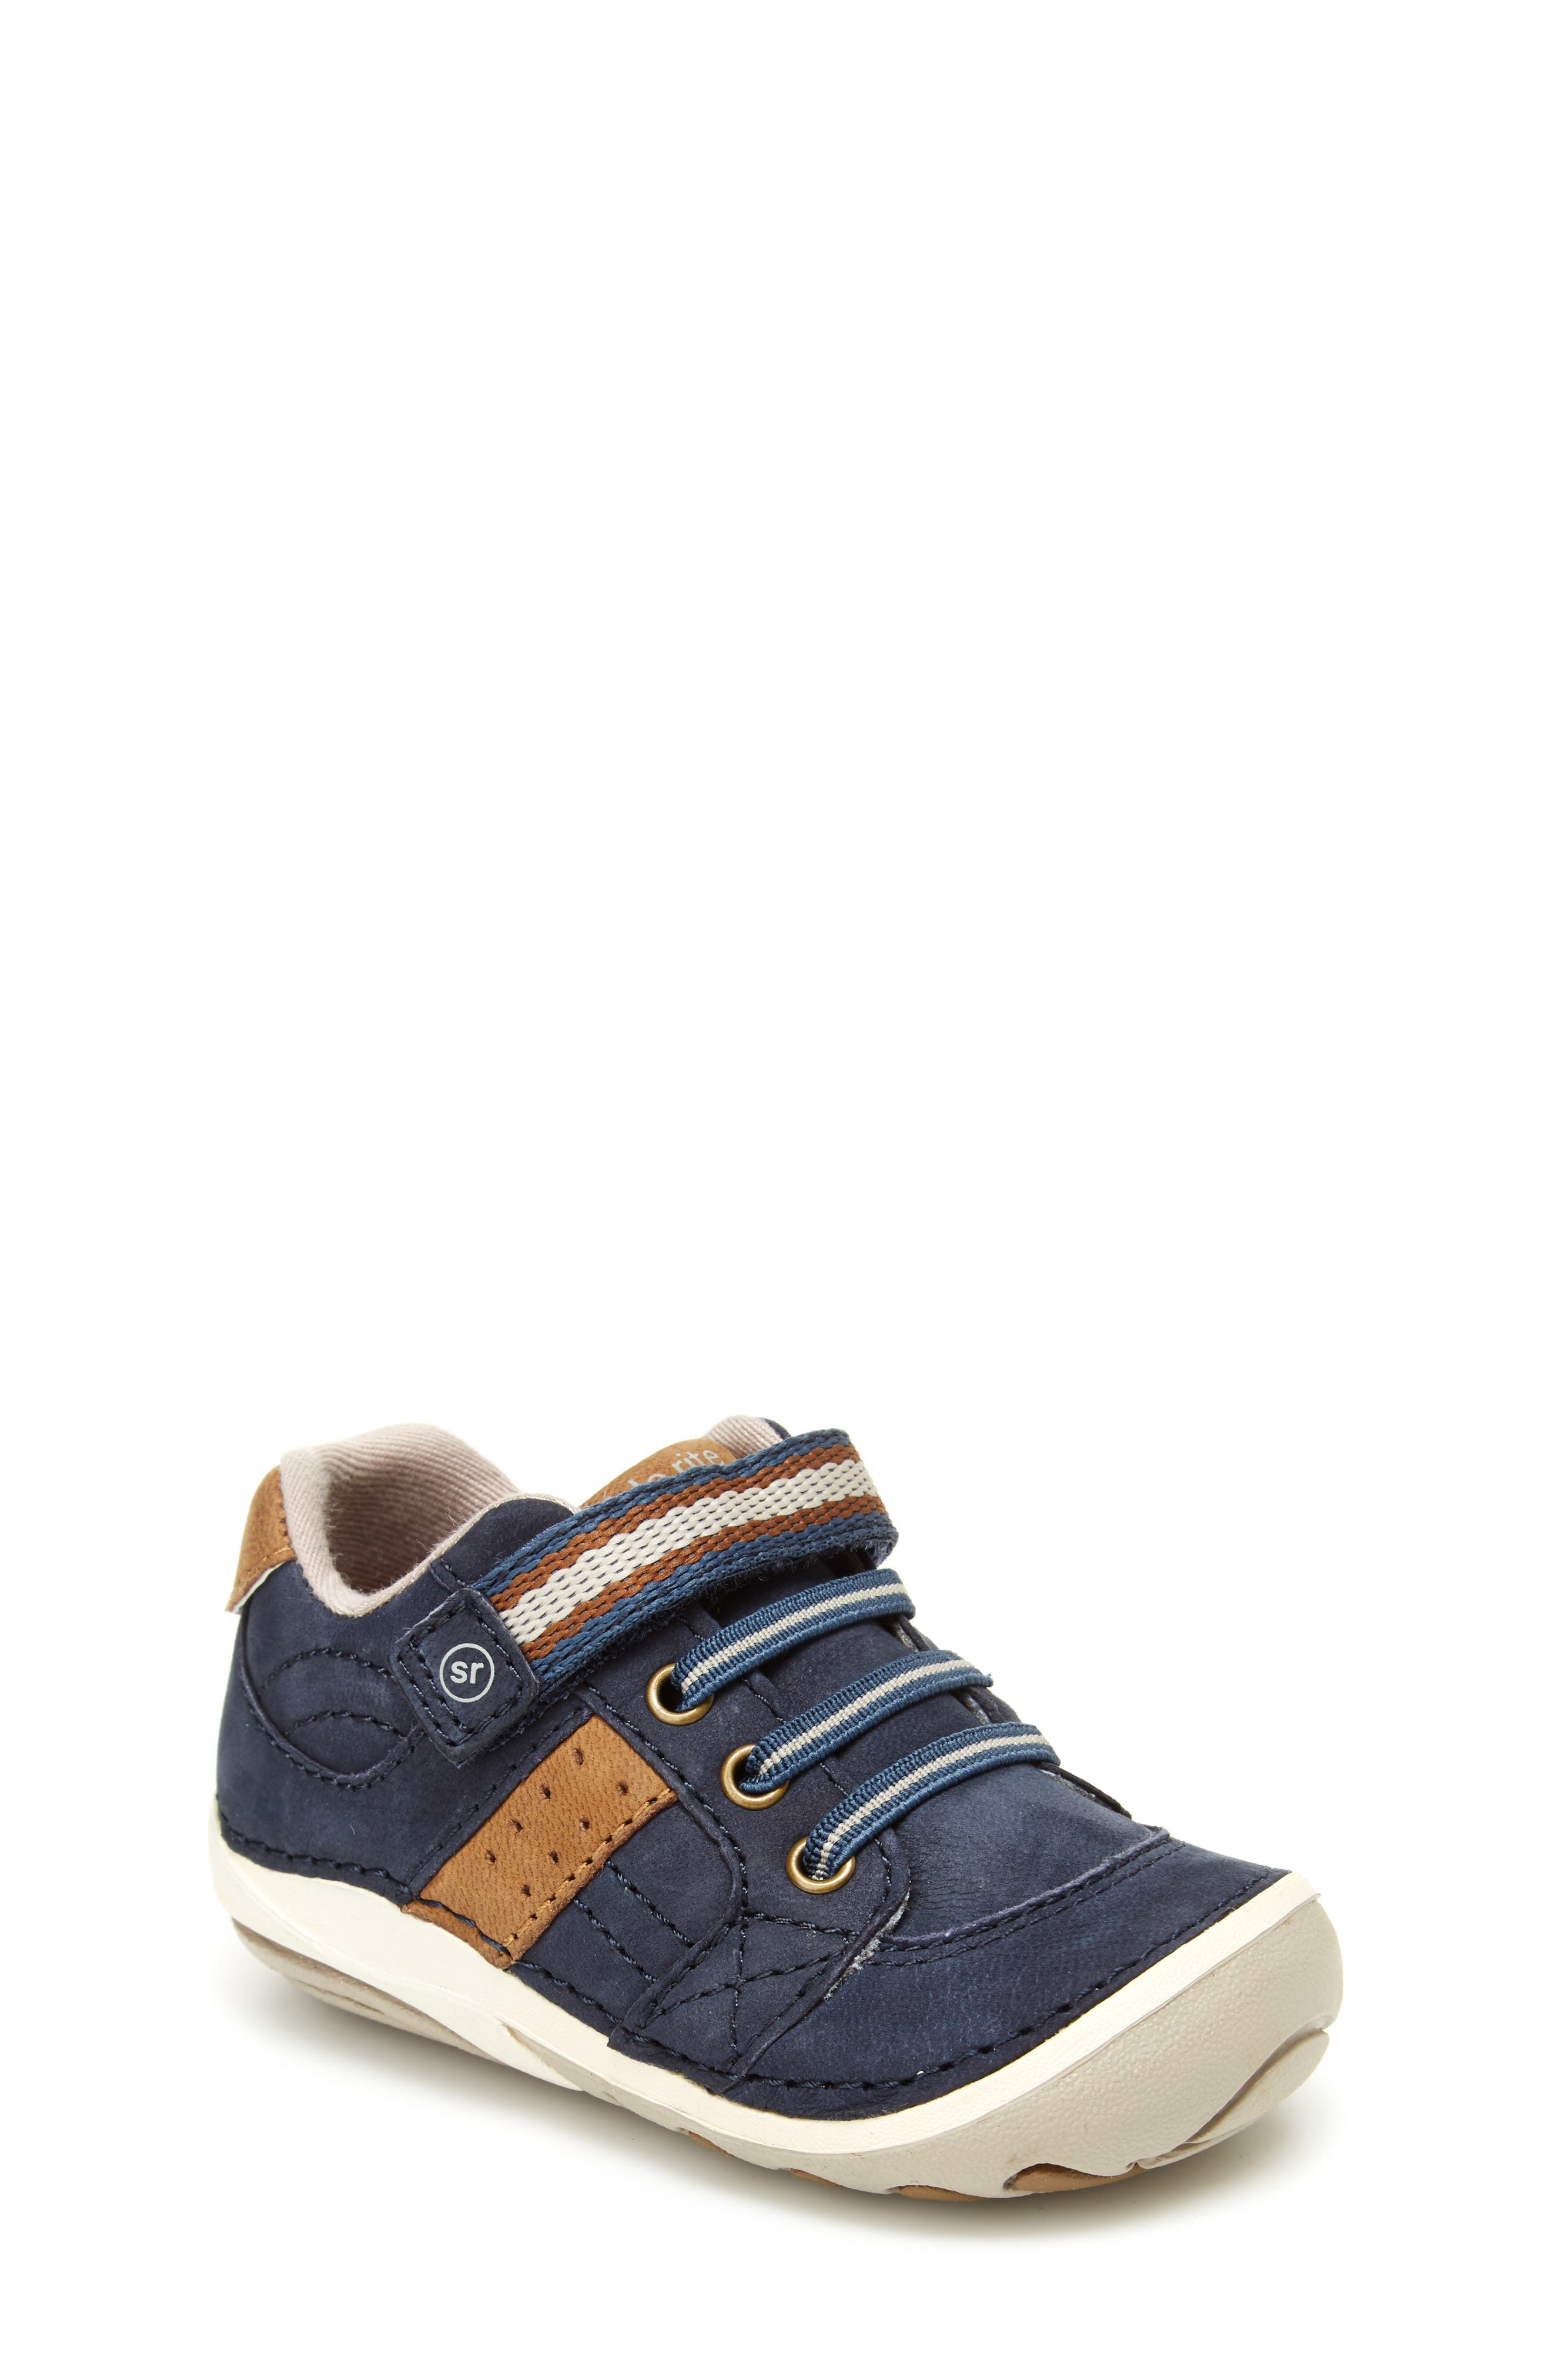 Baby Stride Rite's Shoes: First Walkers